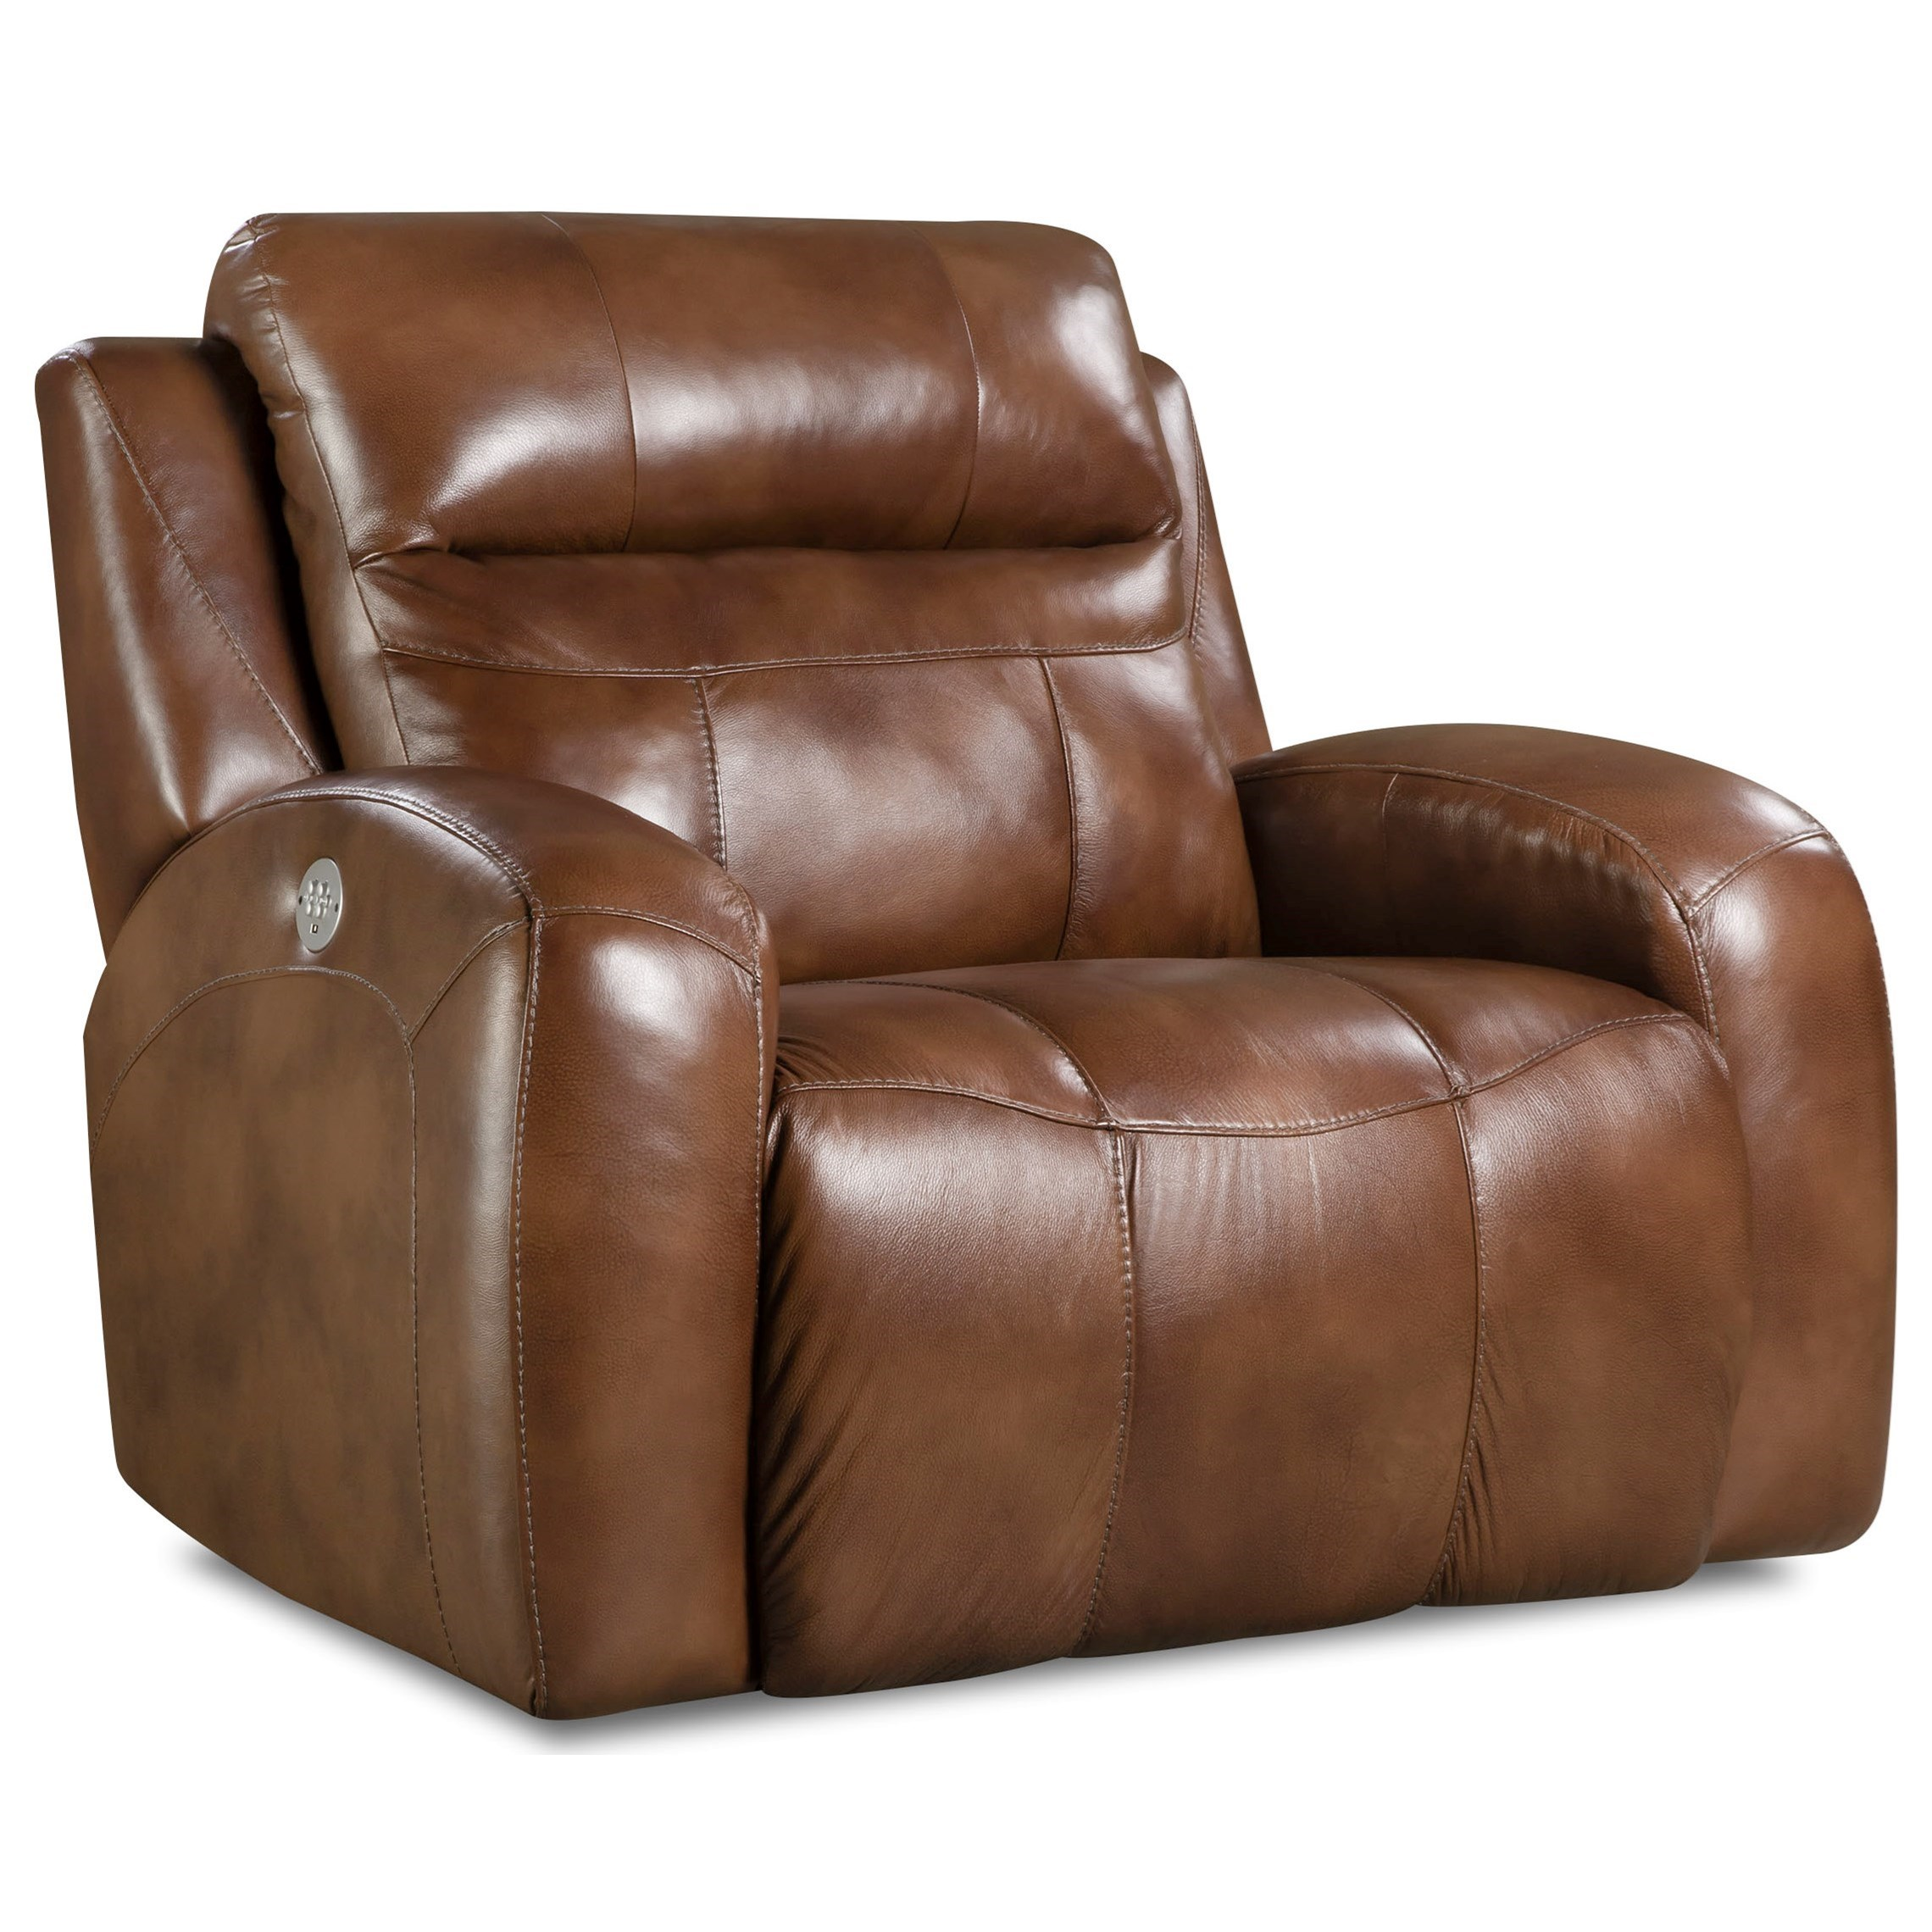 Southern Motion Flight Power Reclining Chair and a Half - Item Number: 868-10P